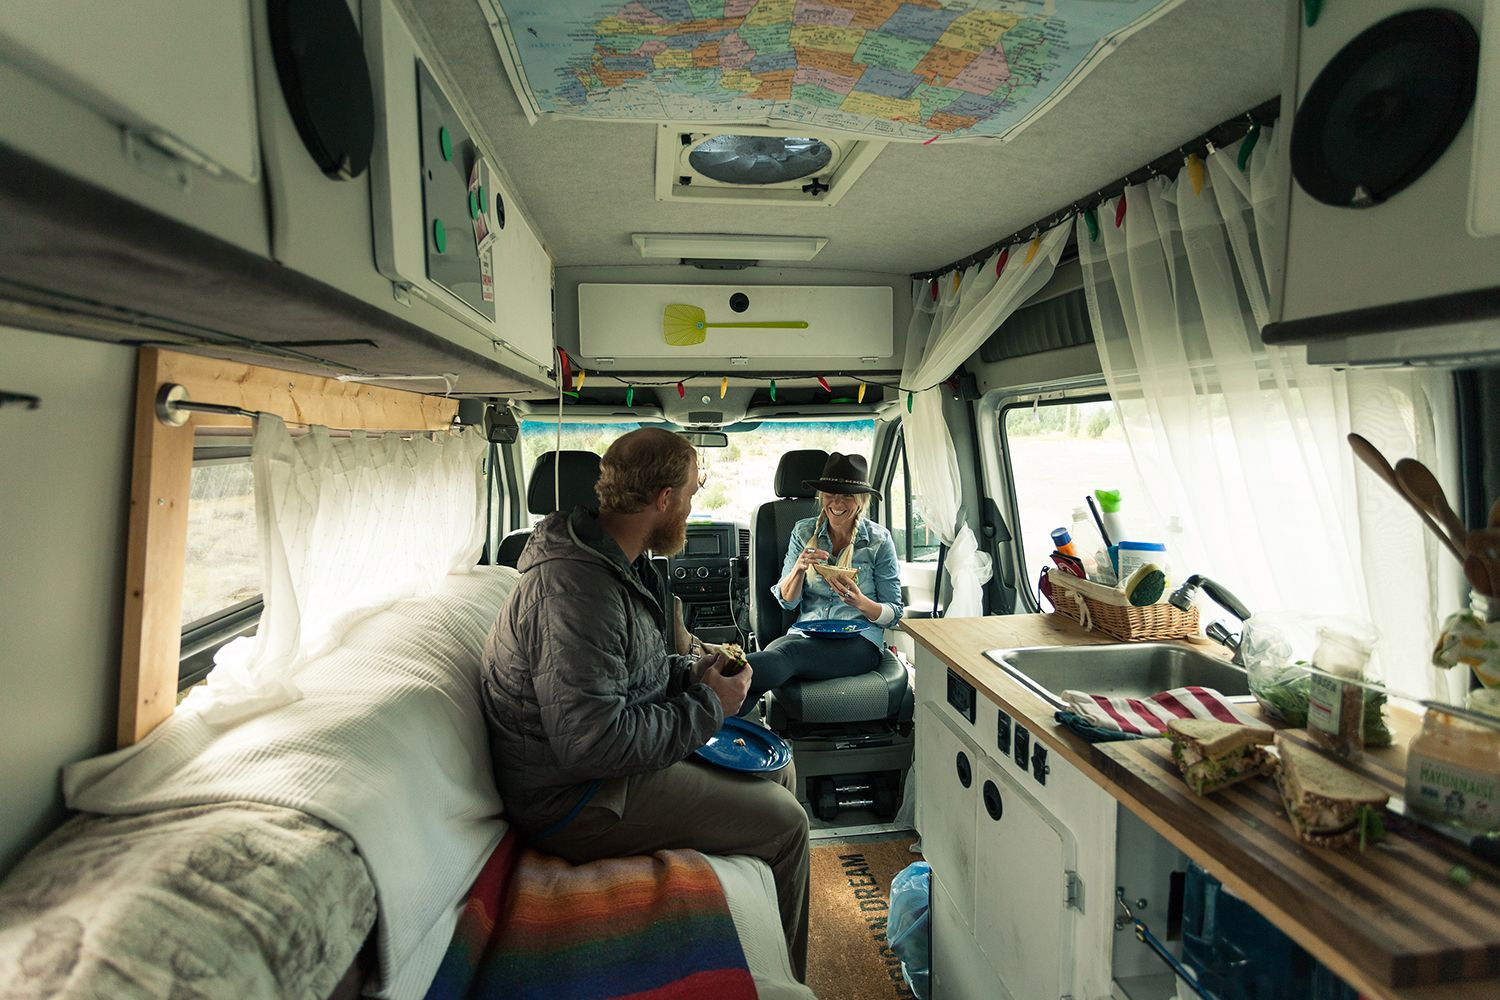 Cooking in Small Spaces | Bus remodel, Van life and Rv campers